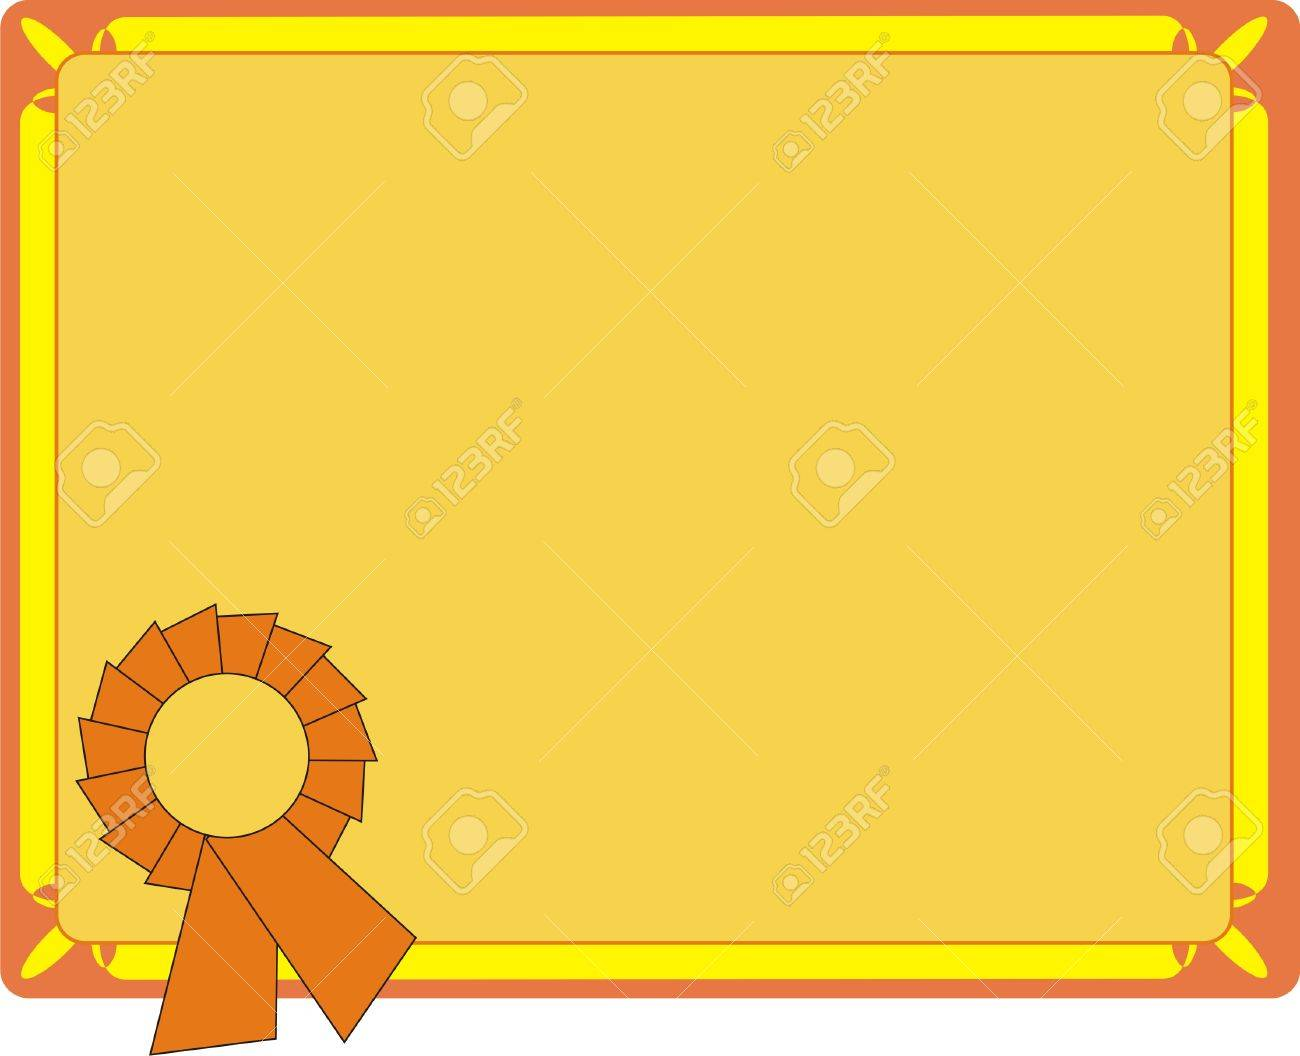 Blank Orange Certificate On Letter Format Royalty Free Cliparts ...